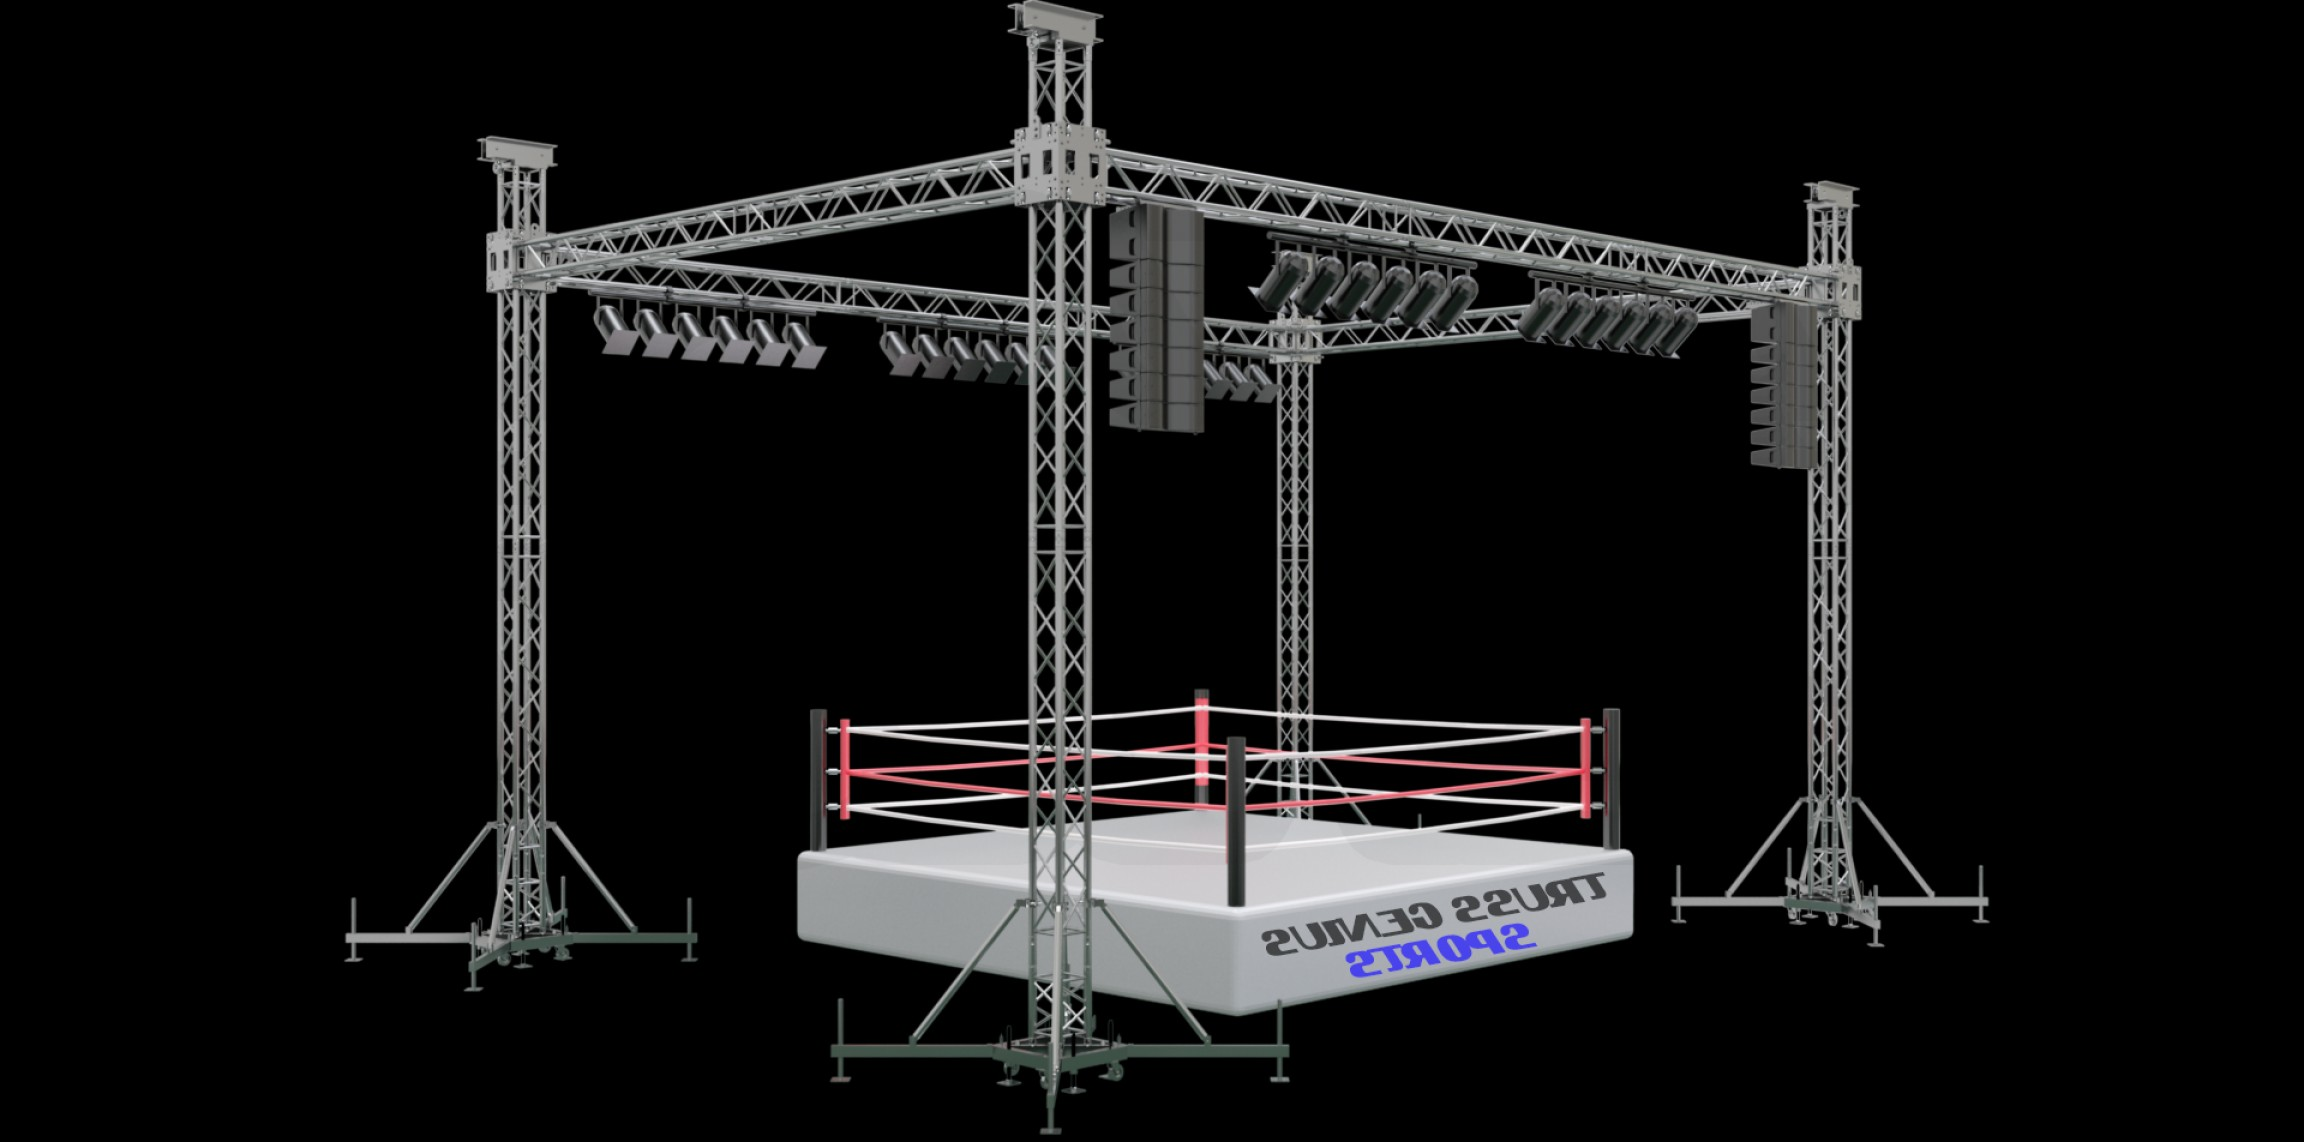 Aluminum Truss Design Vector: Stylish And Beautiful Lighting Truss Intended For Residence Image